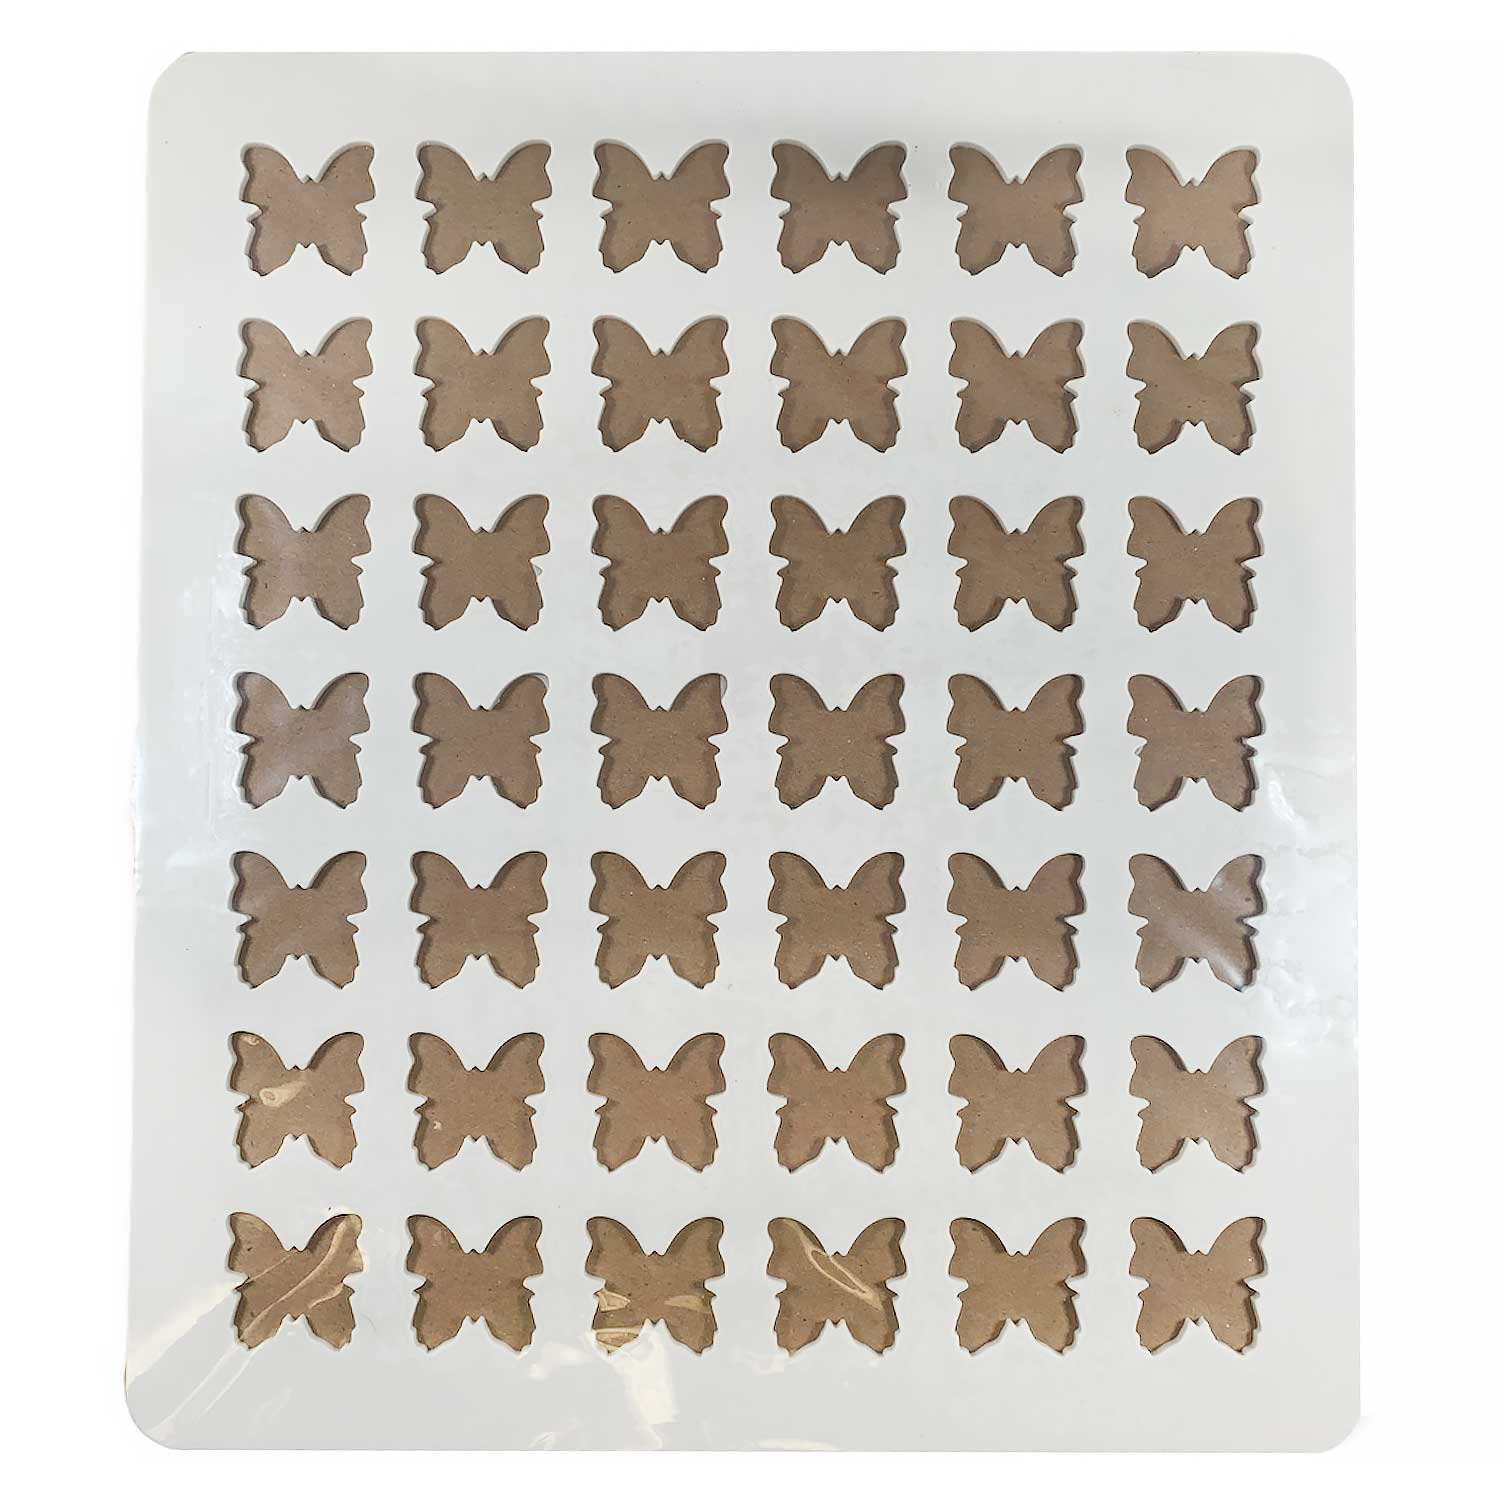 Chablon Silicone Chocolate Template- Butterfly